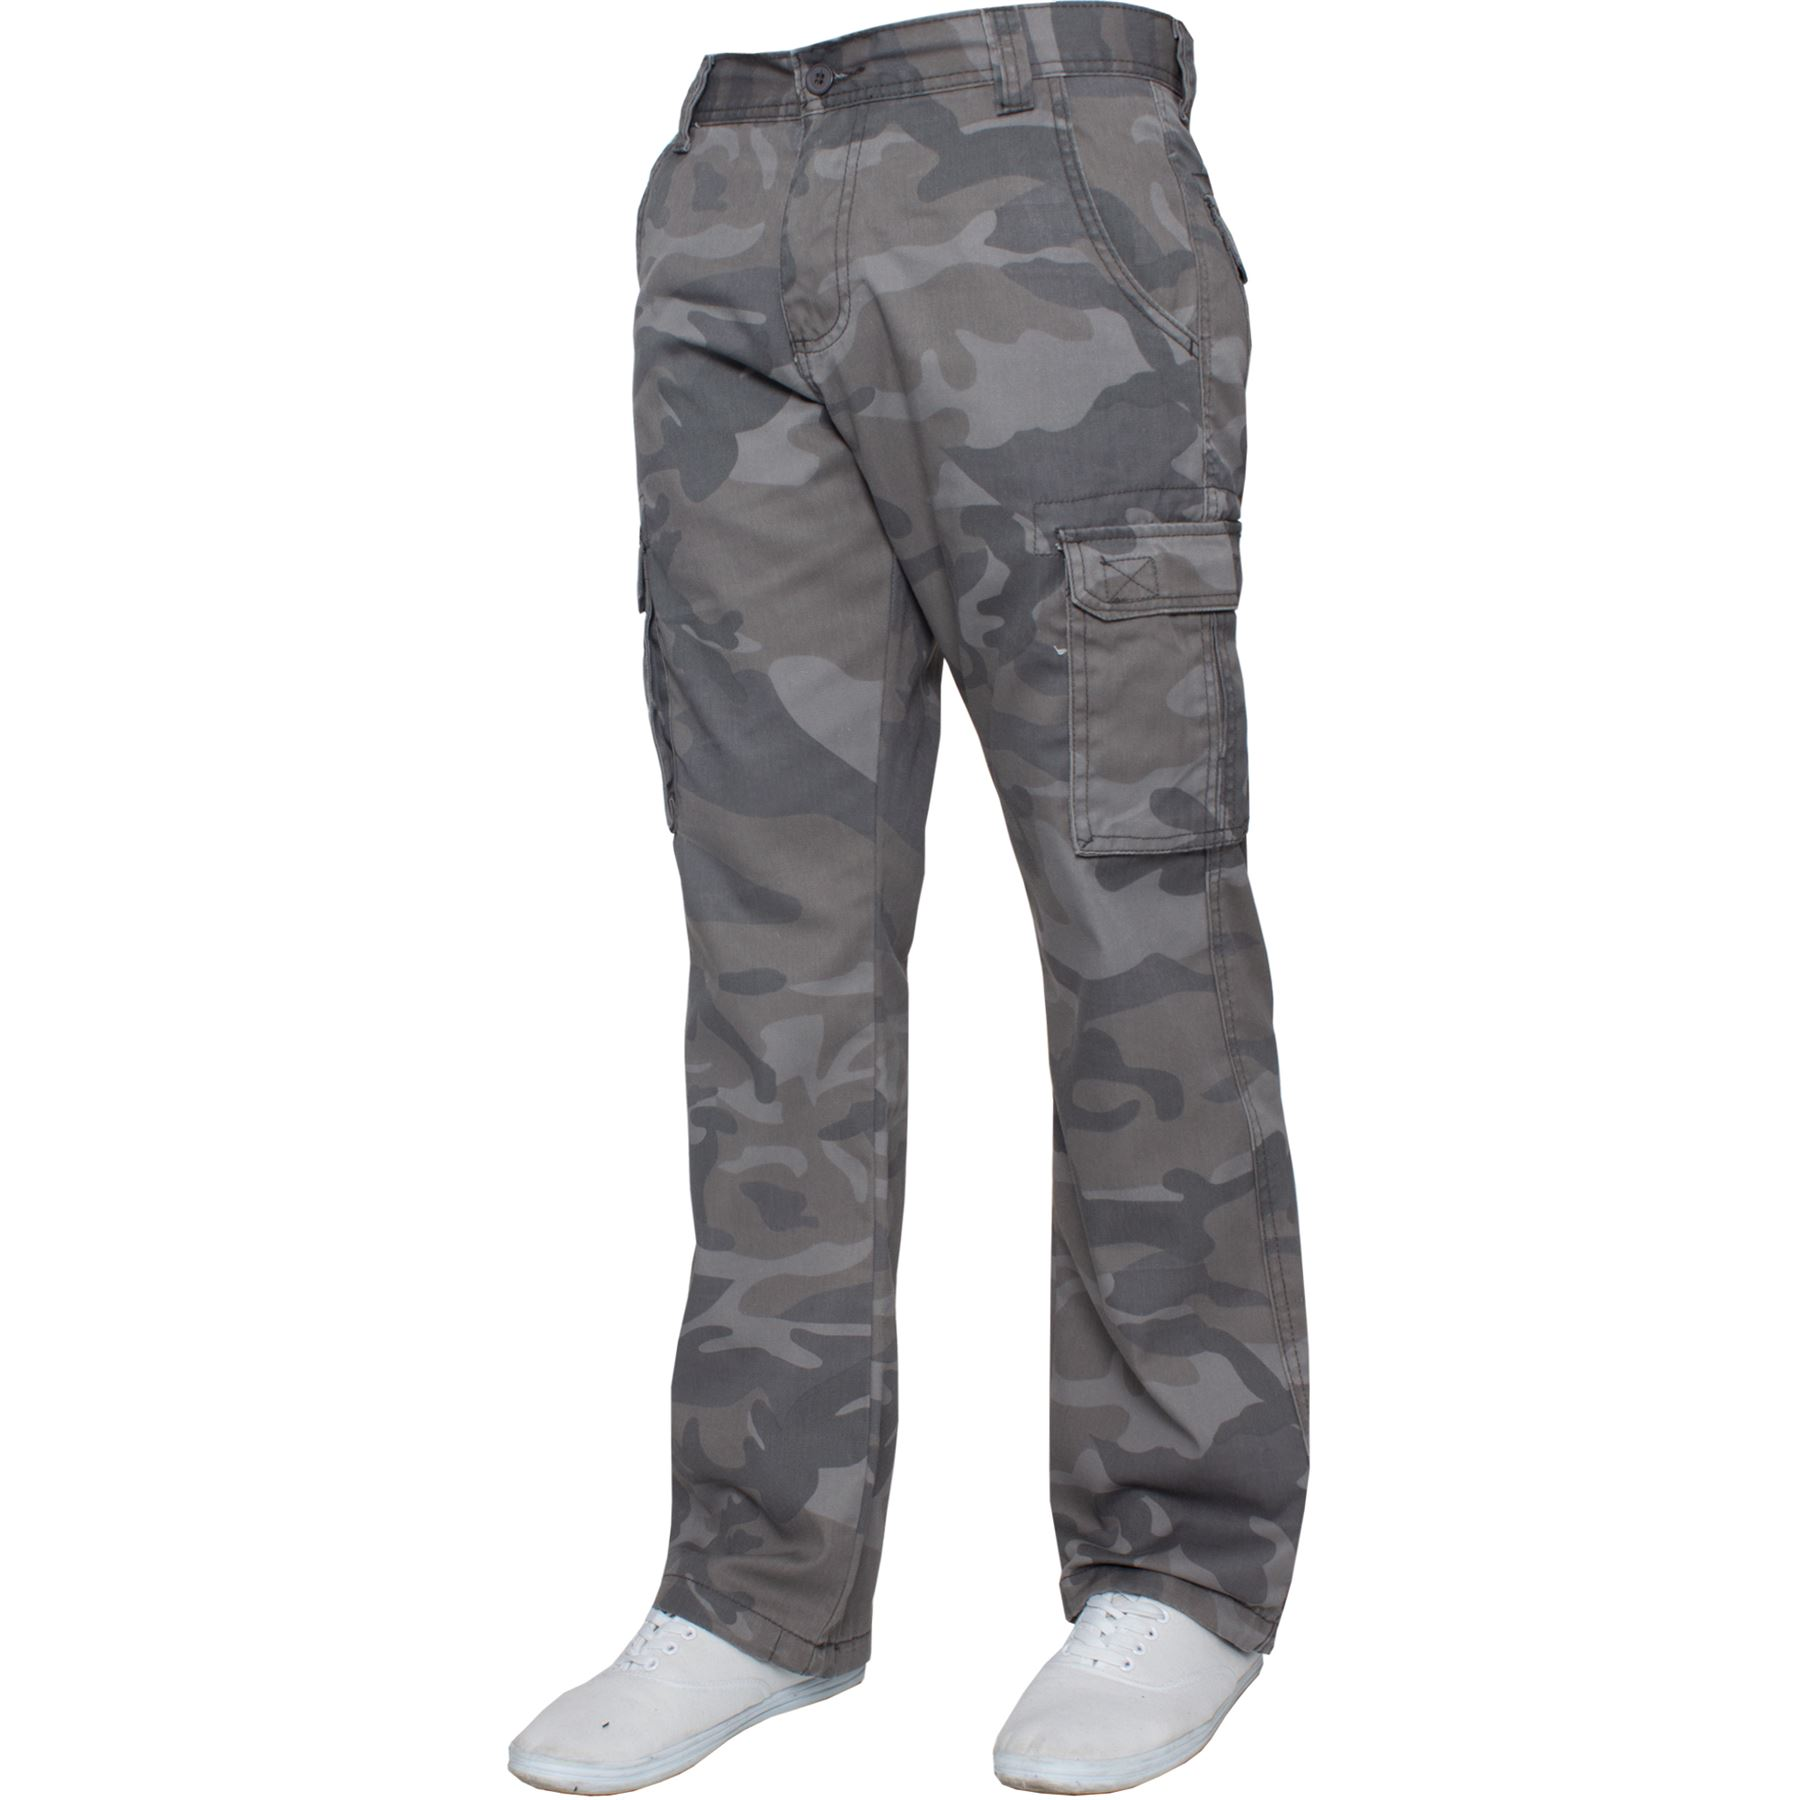 Kruze-Mens-Military-Combat-Trousers-Camouflage-Cargo-Camo-Army-Casual-Work-Pants thumbnail 9